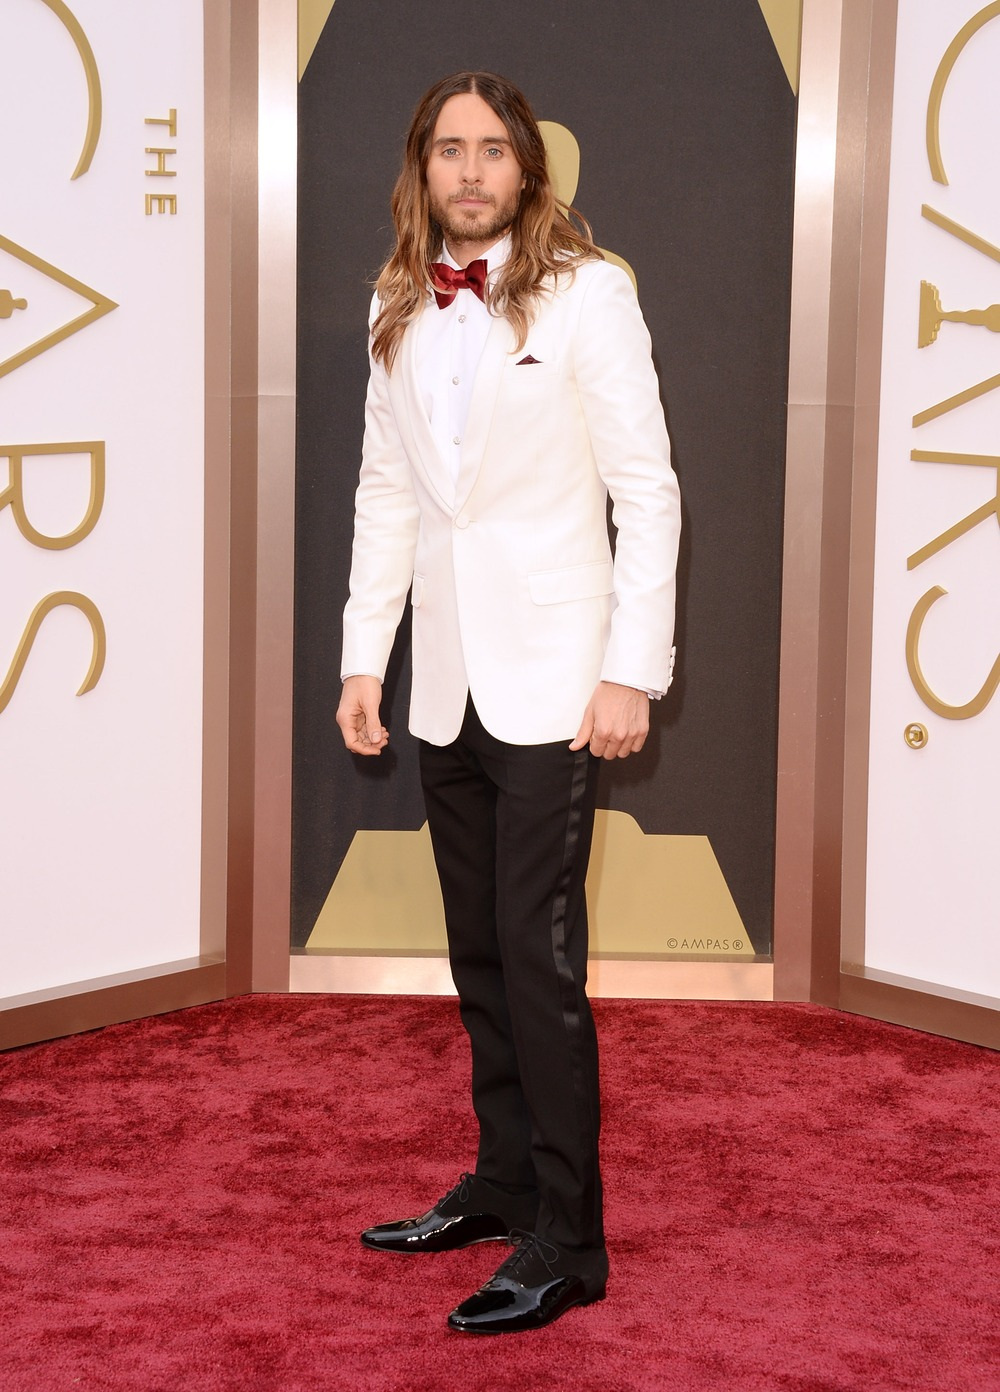 Jared Leto Shades Jennifer Lawrence, Implies She Falls on Purpose — Is He Serious?